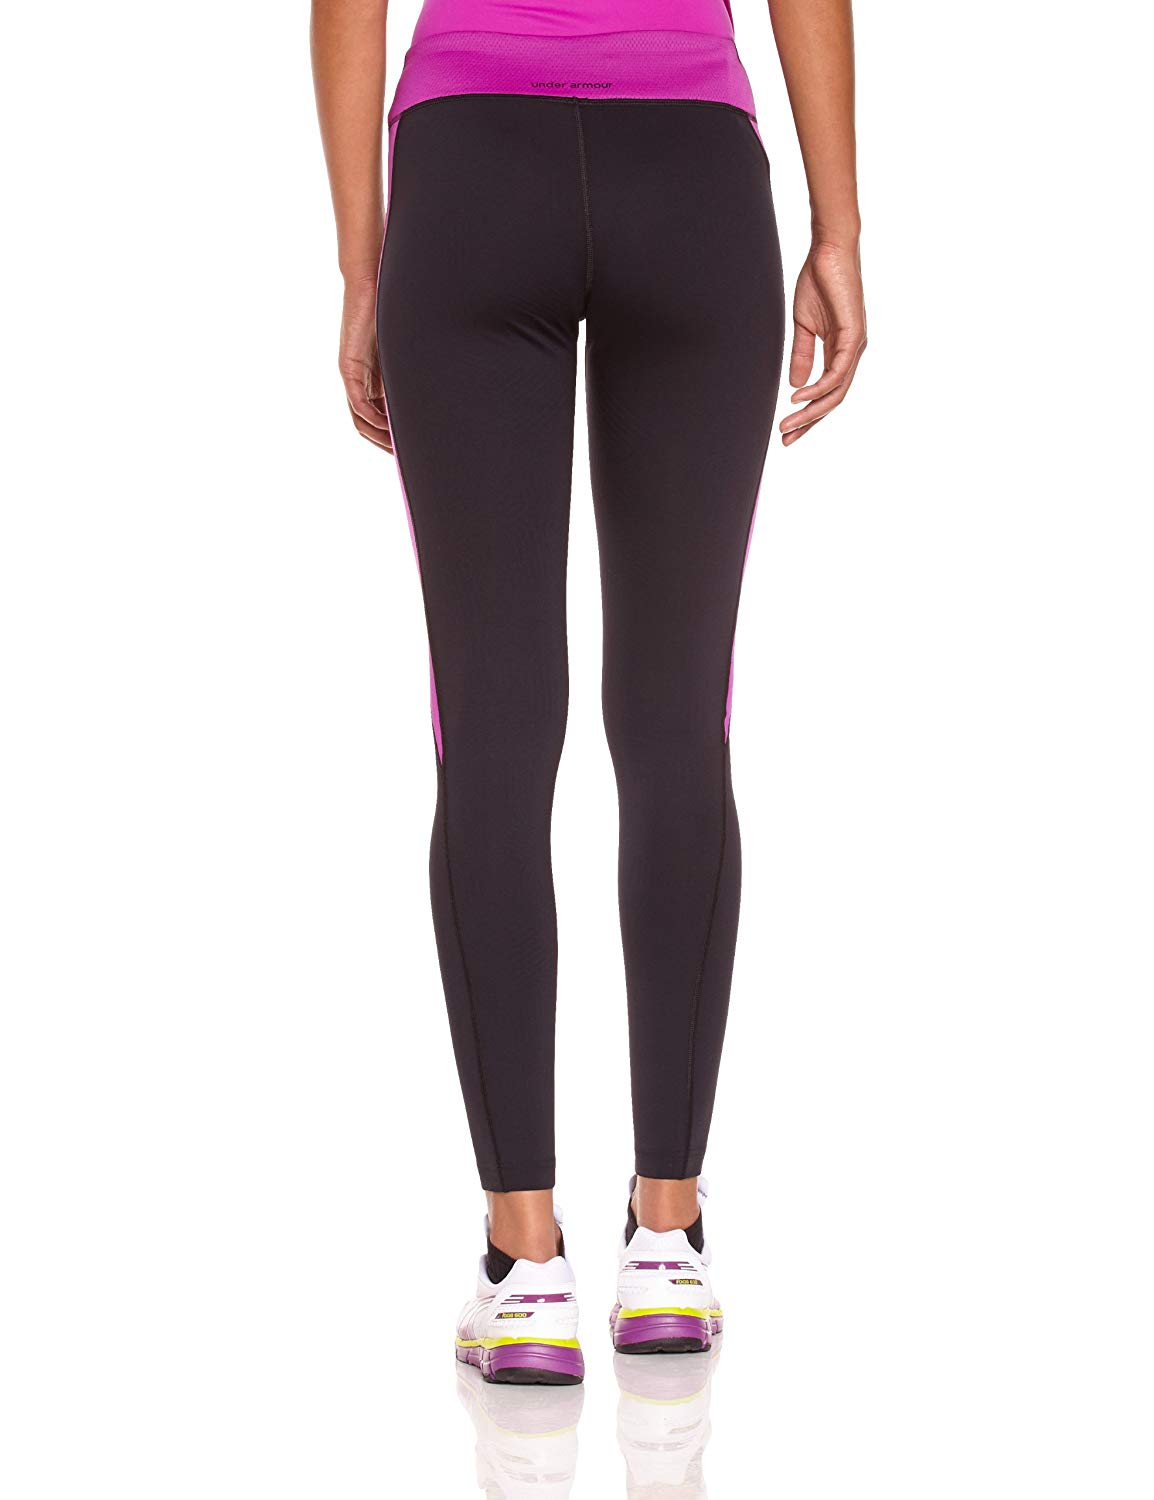 Under Armour Heat ColdGear Infrared Protective Ladies Leggings